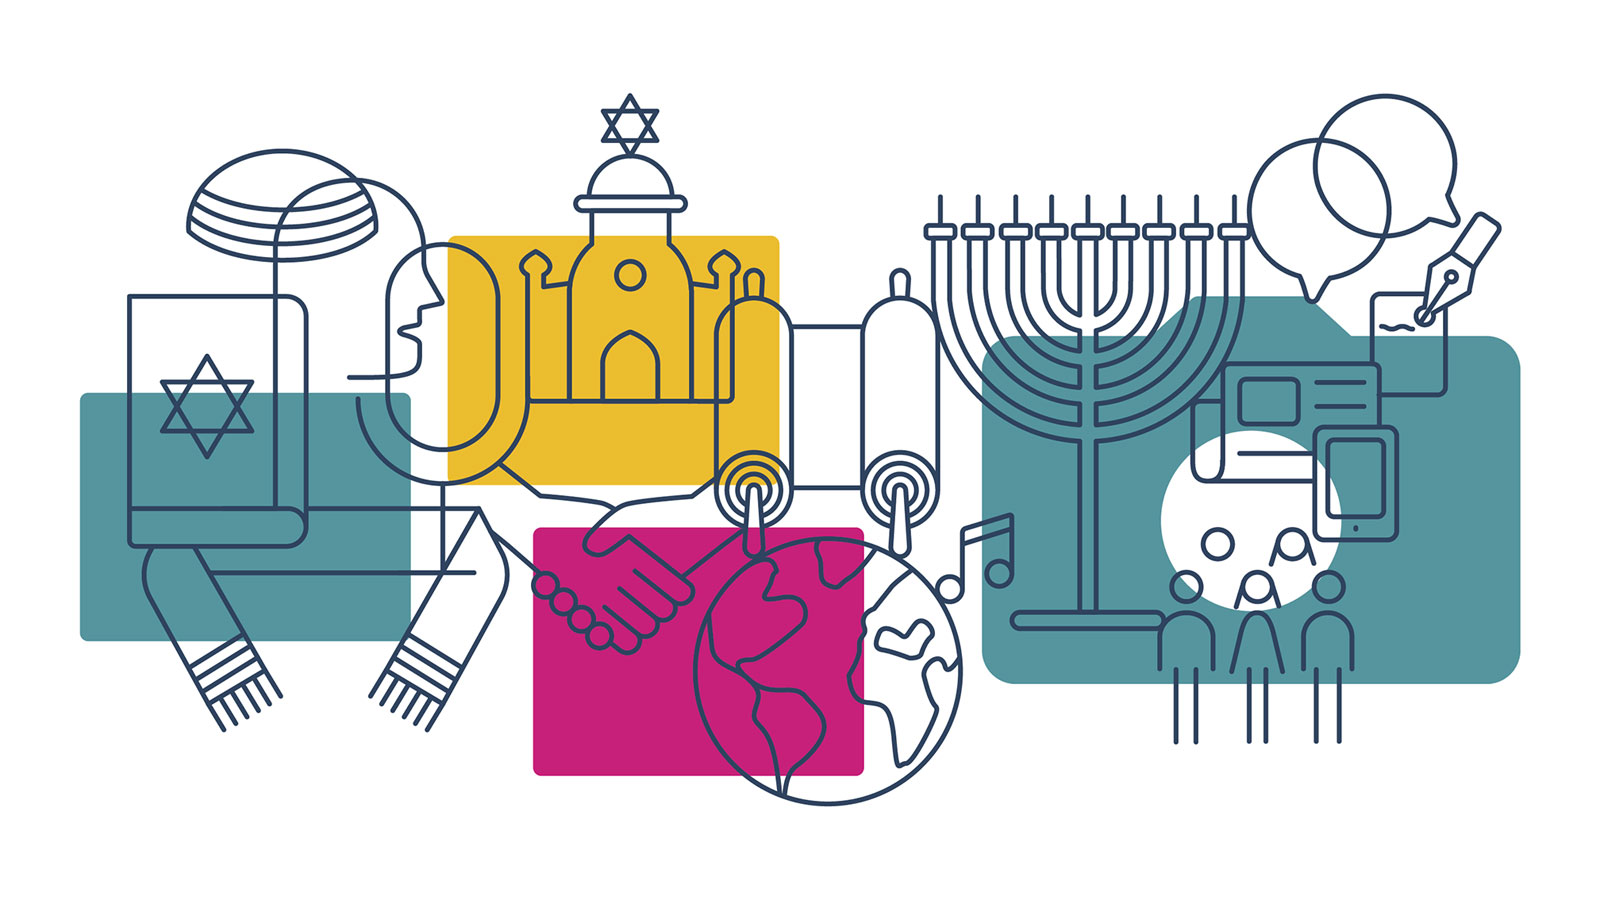 Initiative Kulturelle Integration |Call For Entries: »Cohesion In Diversity –Jewish Everyday Life In Germany«